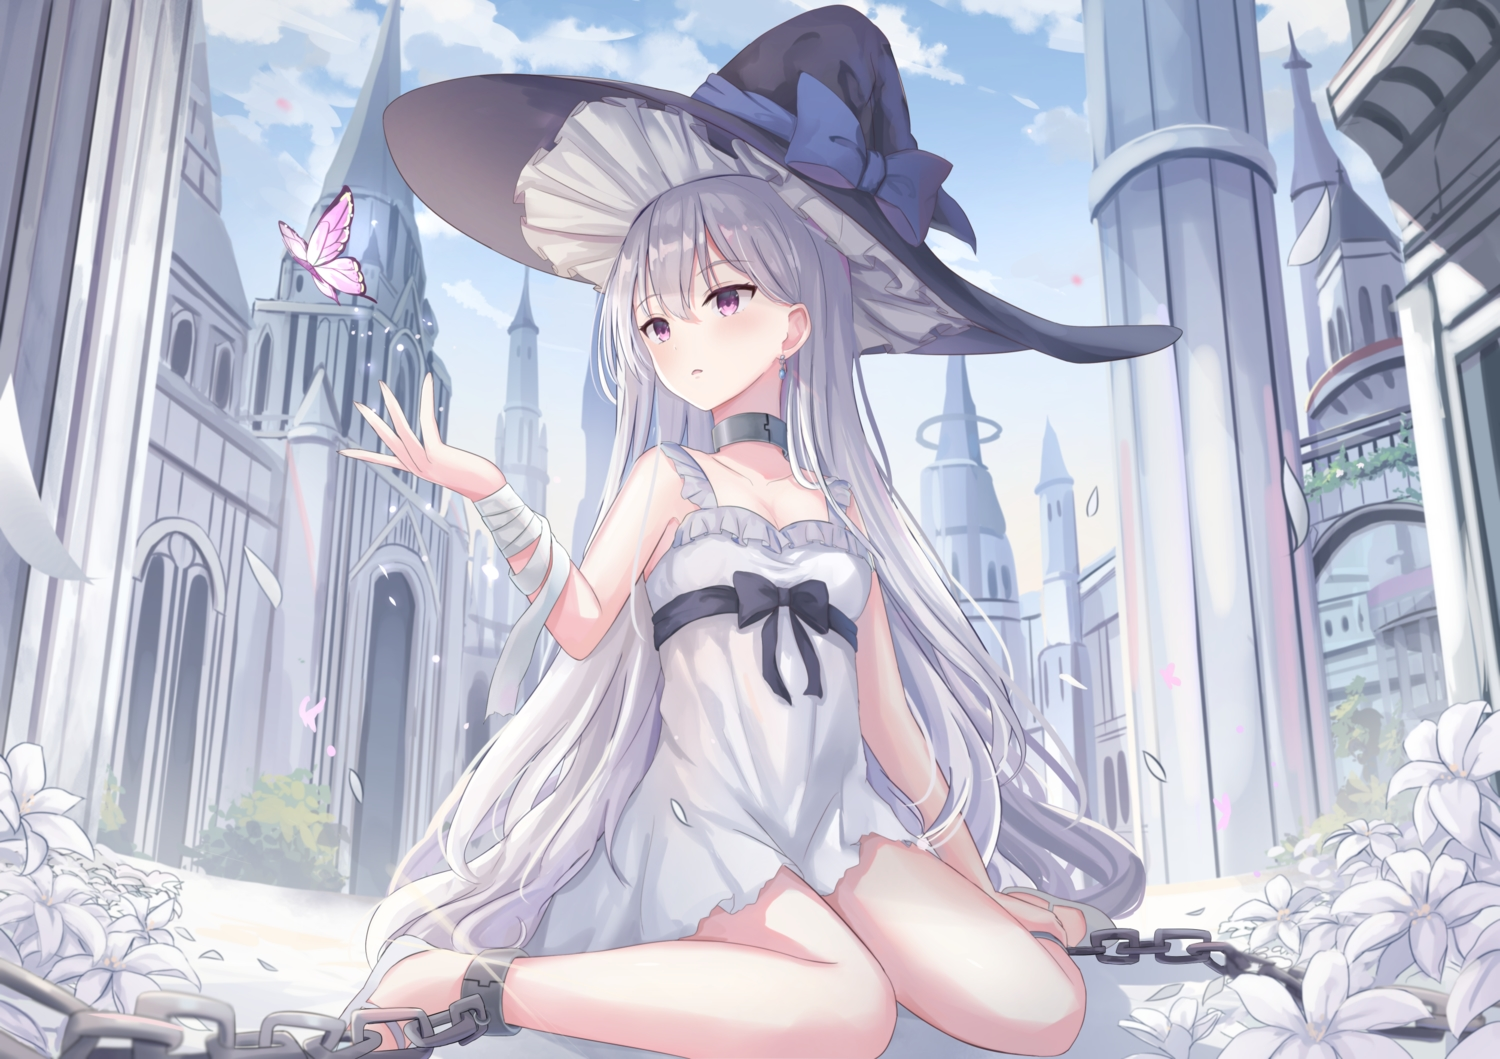 blush bondage bow building butterfly chain clouds dress flowers gray_hair hat long_hair original purple_eyes shackles sky summer_dress touhourh witch_hat